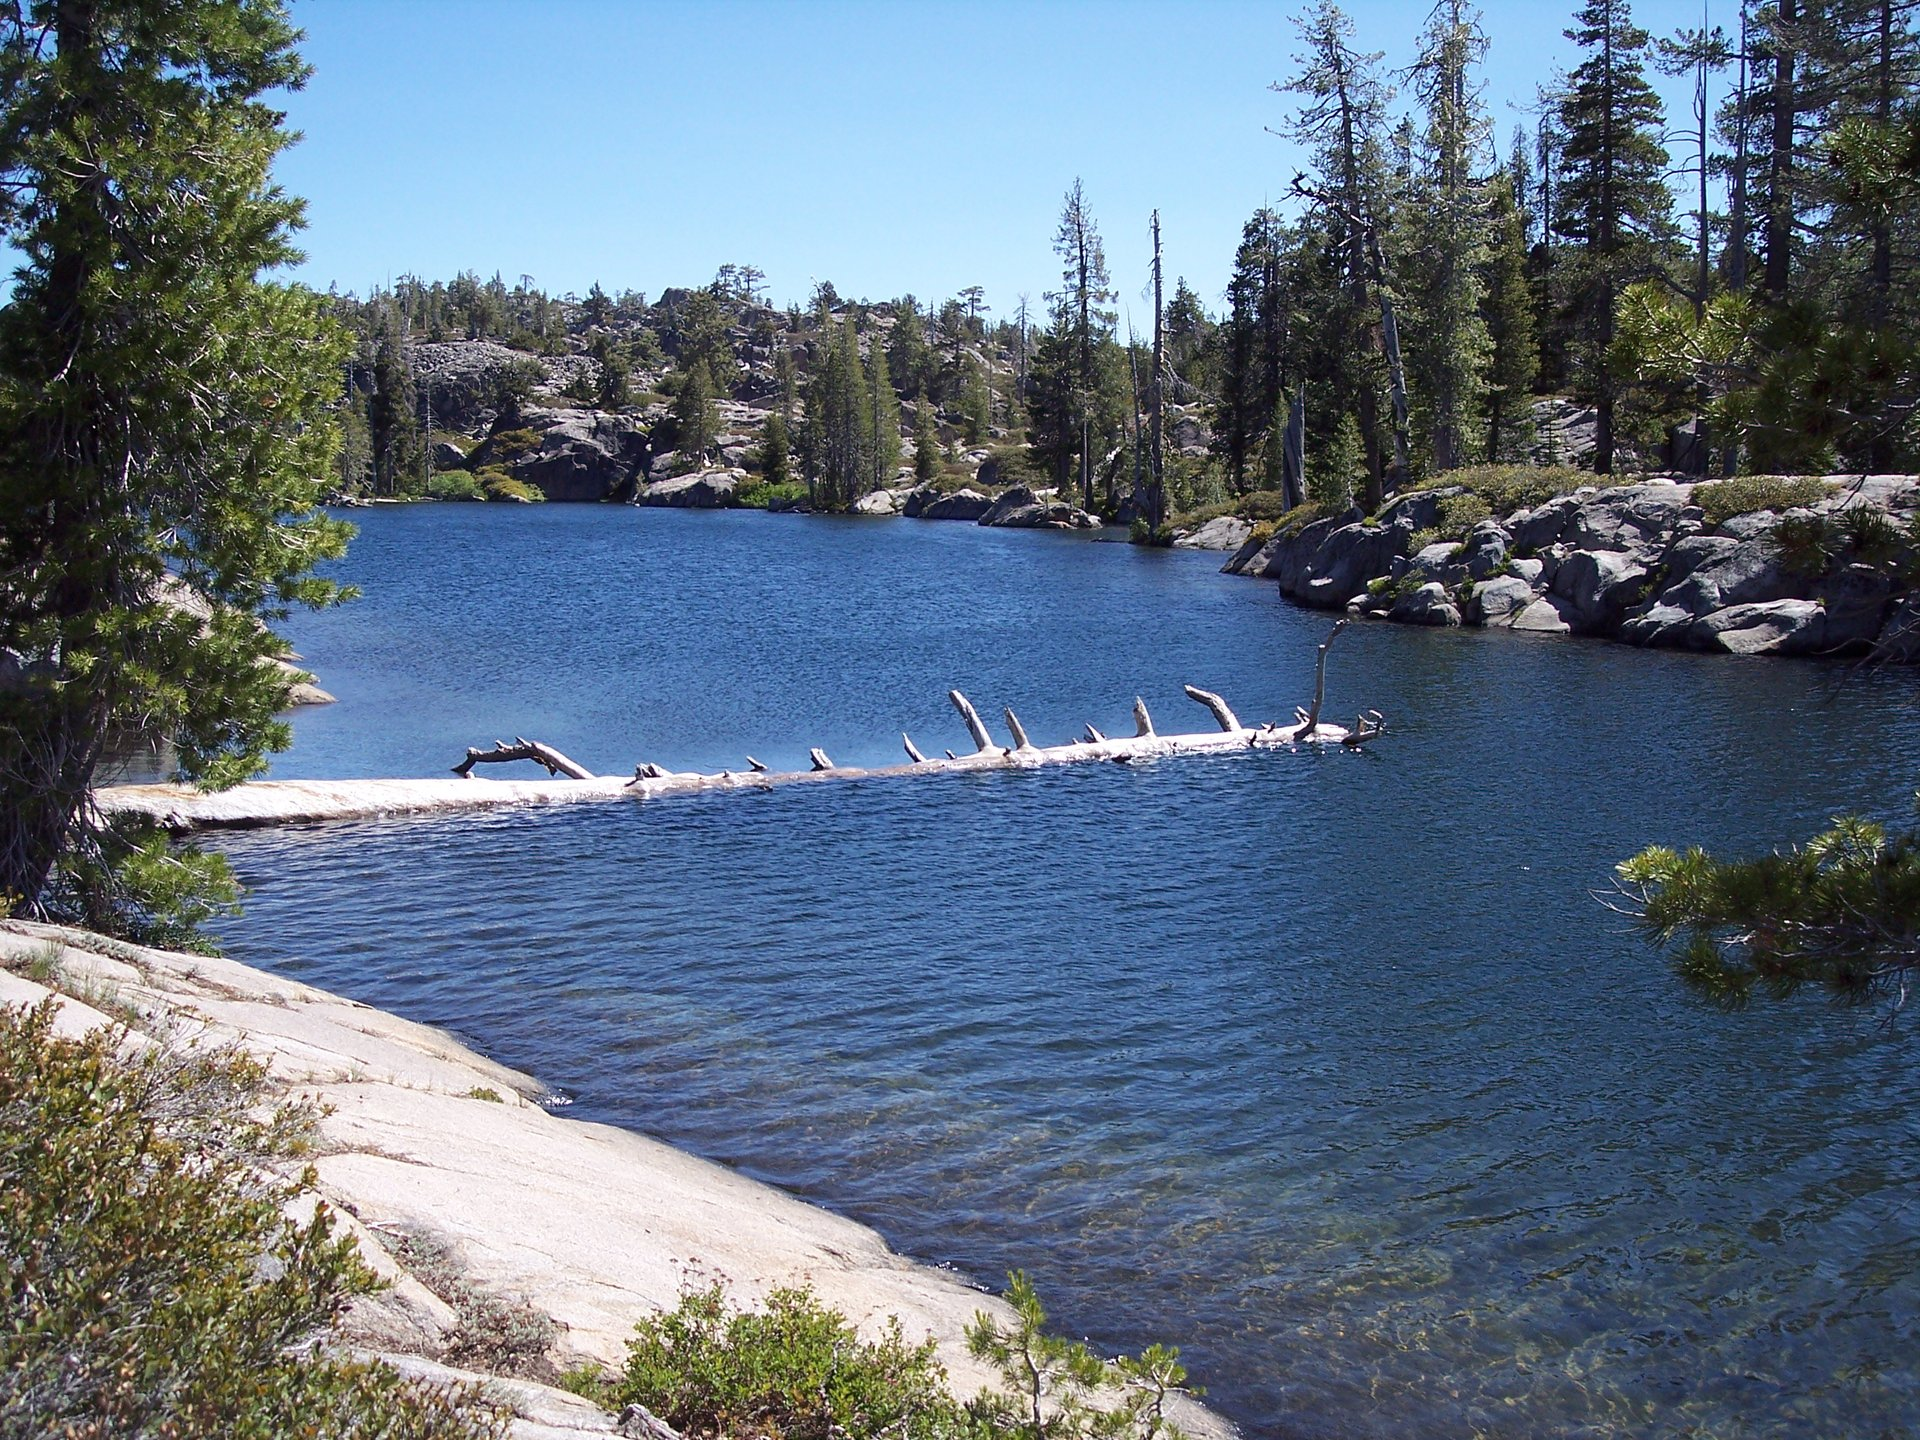 A hike on the Loch Leven Lakes trail in Northern California 2020